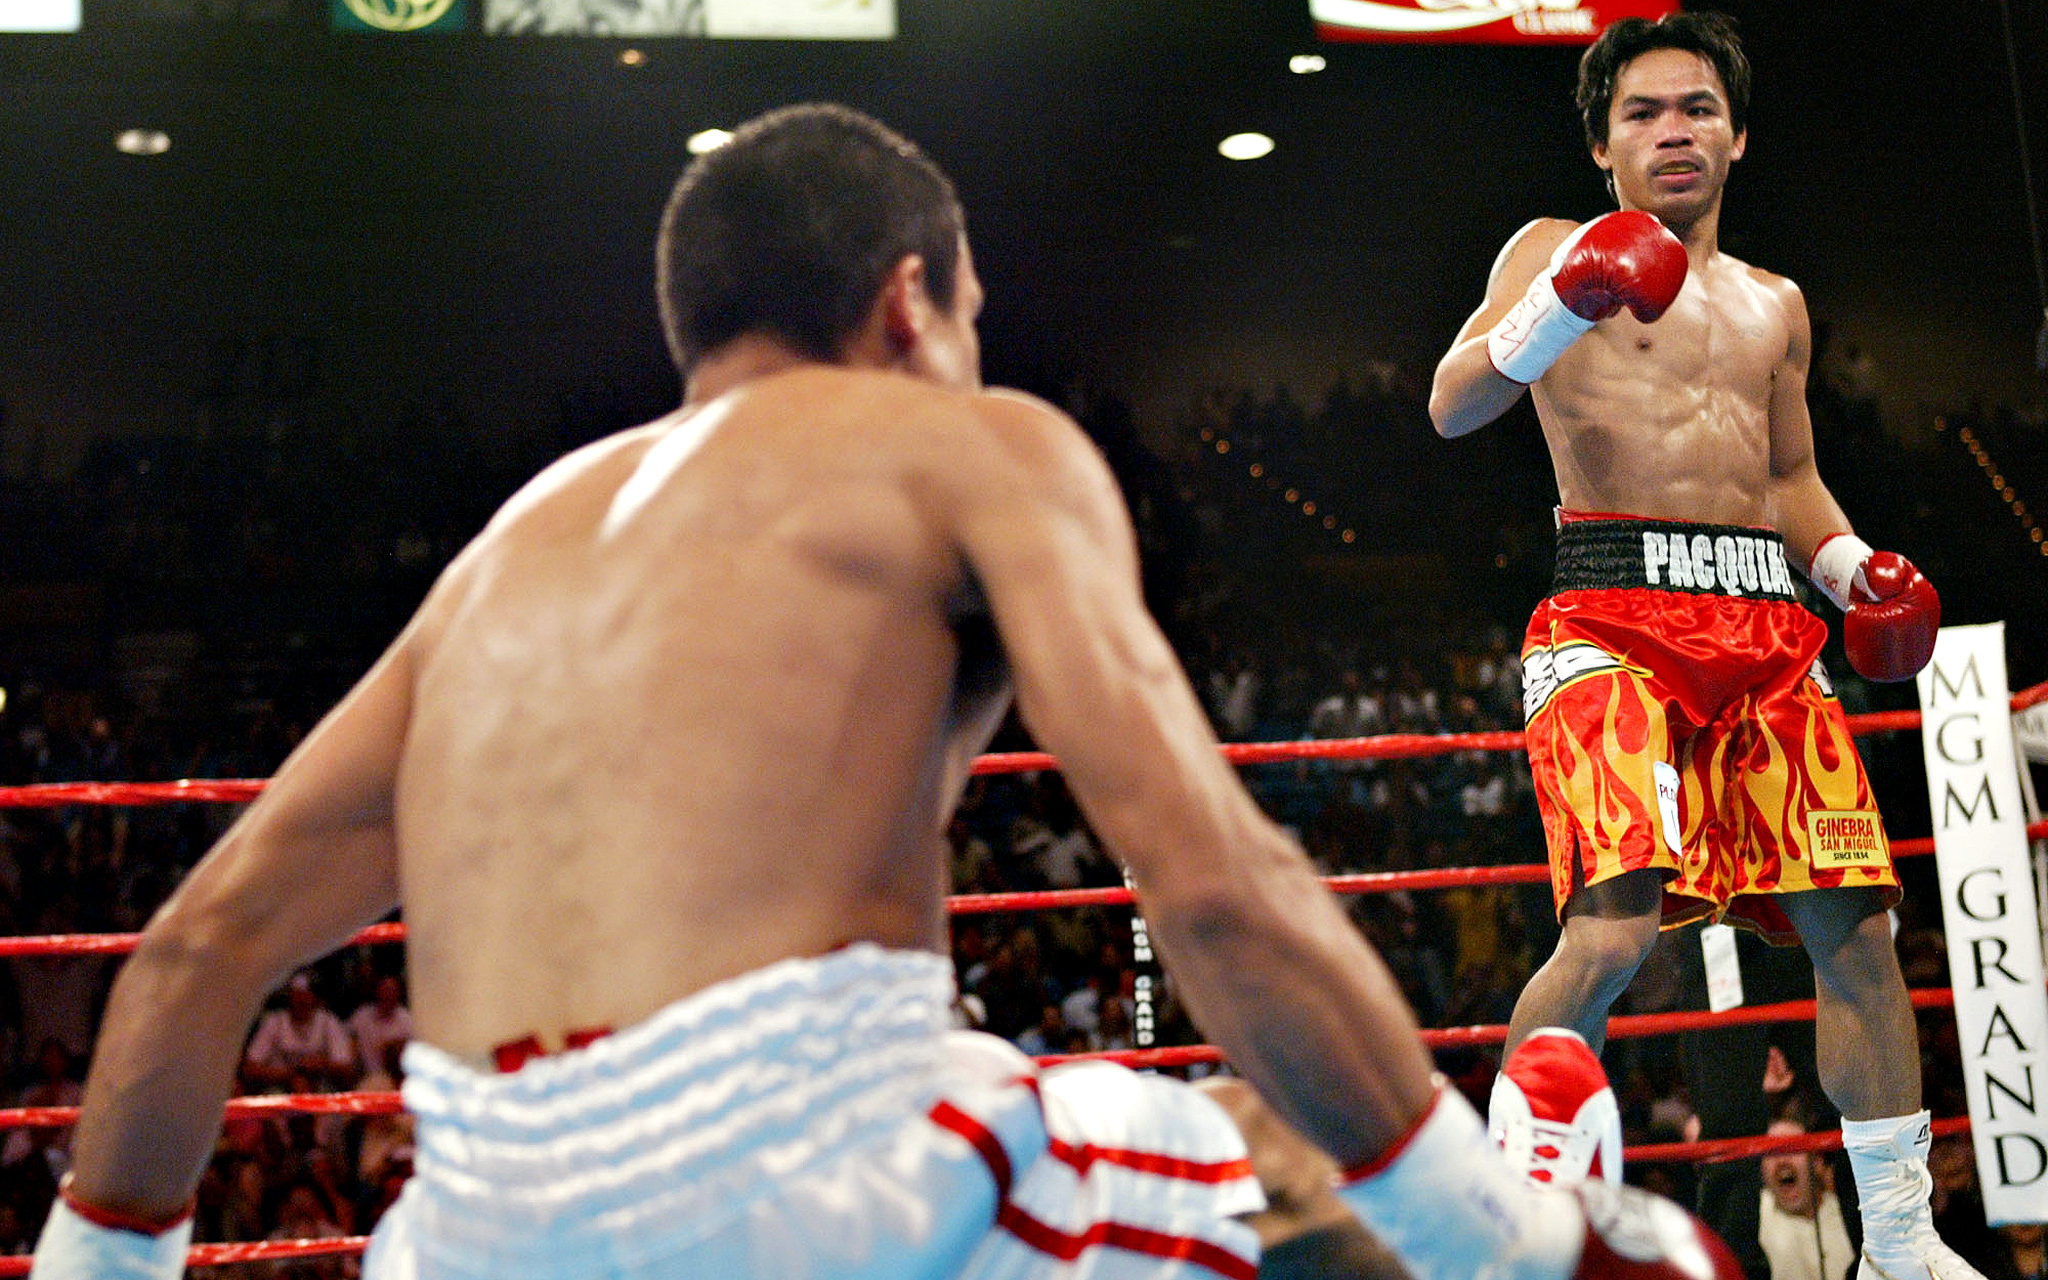 Mayweather Mcgregor Fight Night Arrives At Long Last furthermore Pacquiao Marquez Ii Iii in addition A2 85 44 01300000179462121488442708615 as well Gate likewise Boxing Wallpaper 012. on manny pacquio